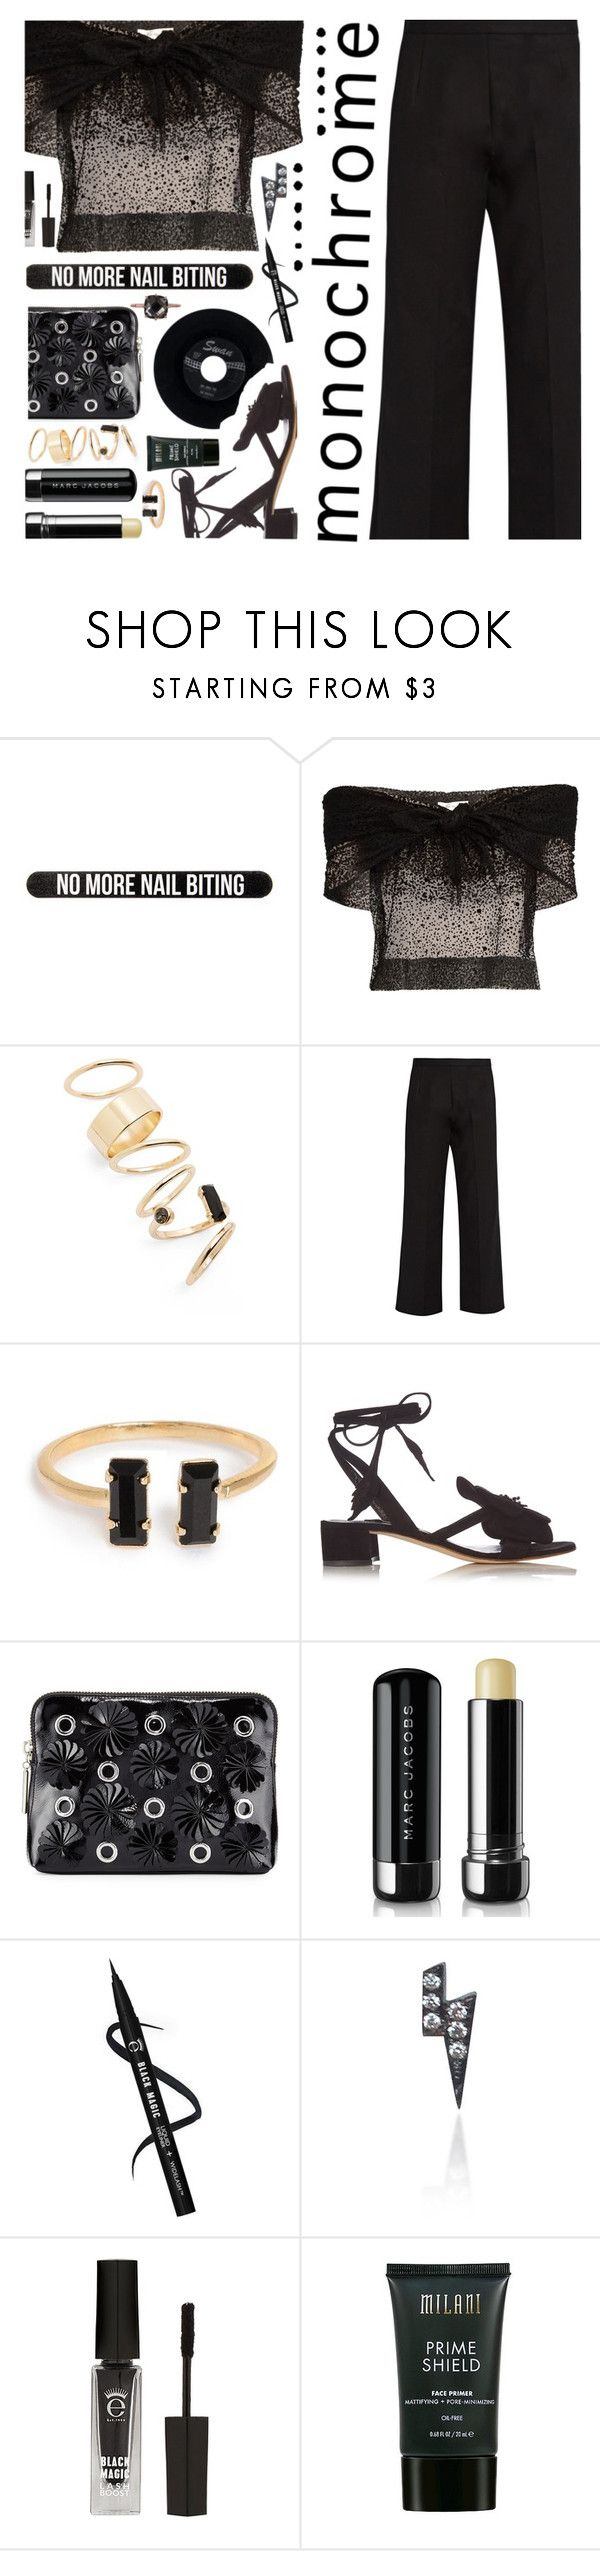 """One Color, Head to Toe"" by annbaker ❤ liked on Polyvore featuring Bershka, Isa Arfen, BP., The Row, Olgana, 3.1 Phillip Lim, Marc Jacobs, CHESTERFIELD, Loquet and Eyeko"